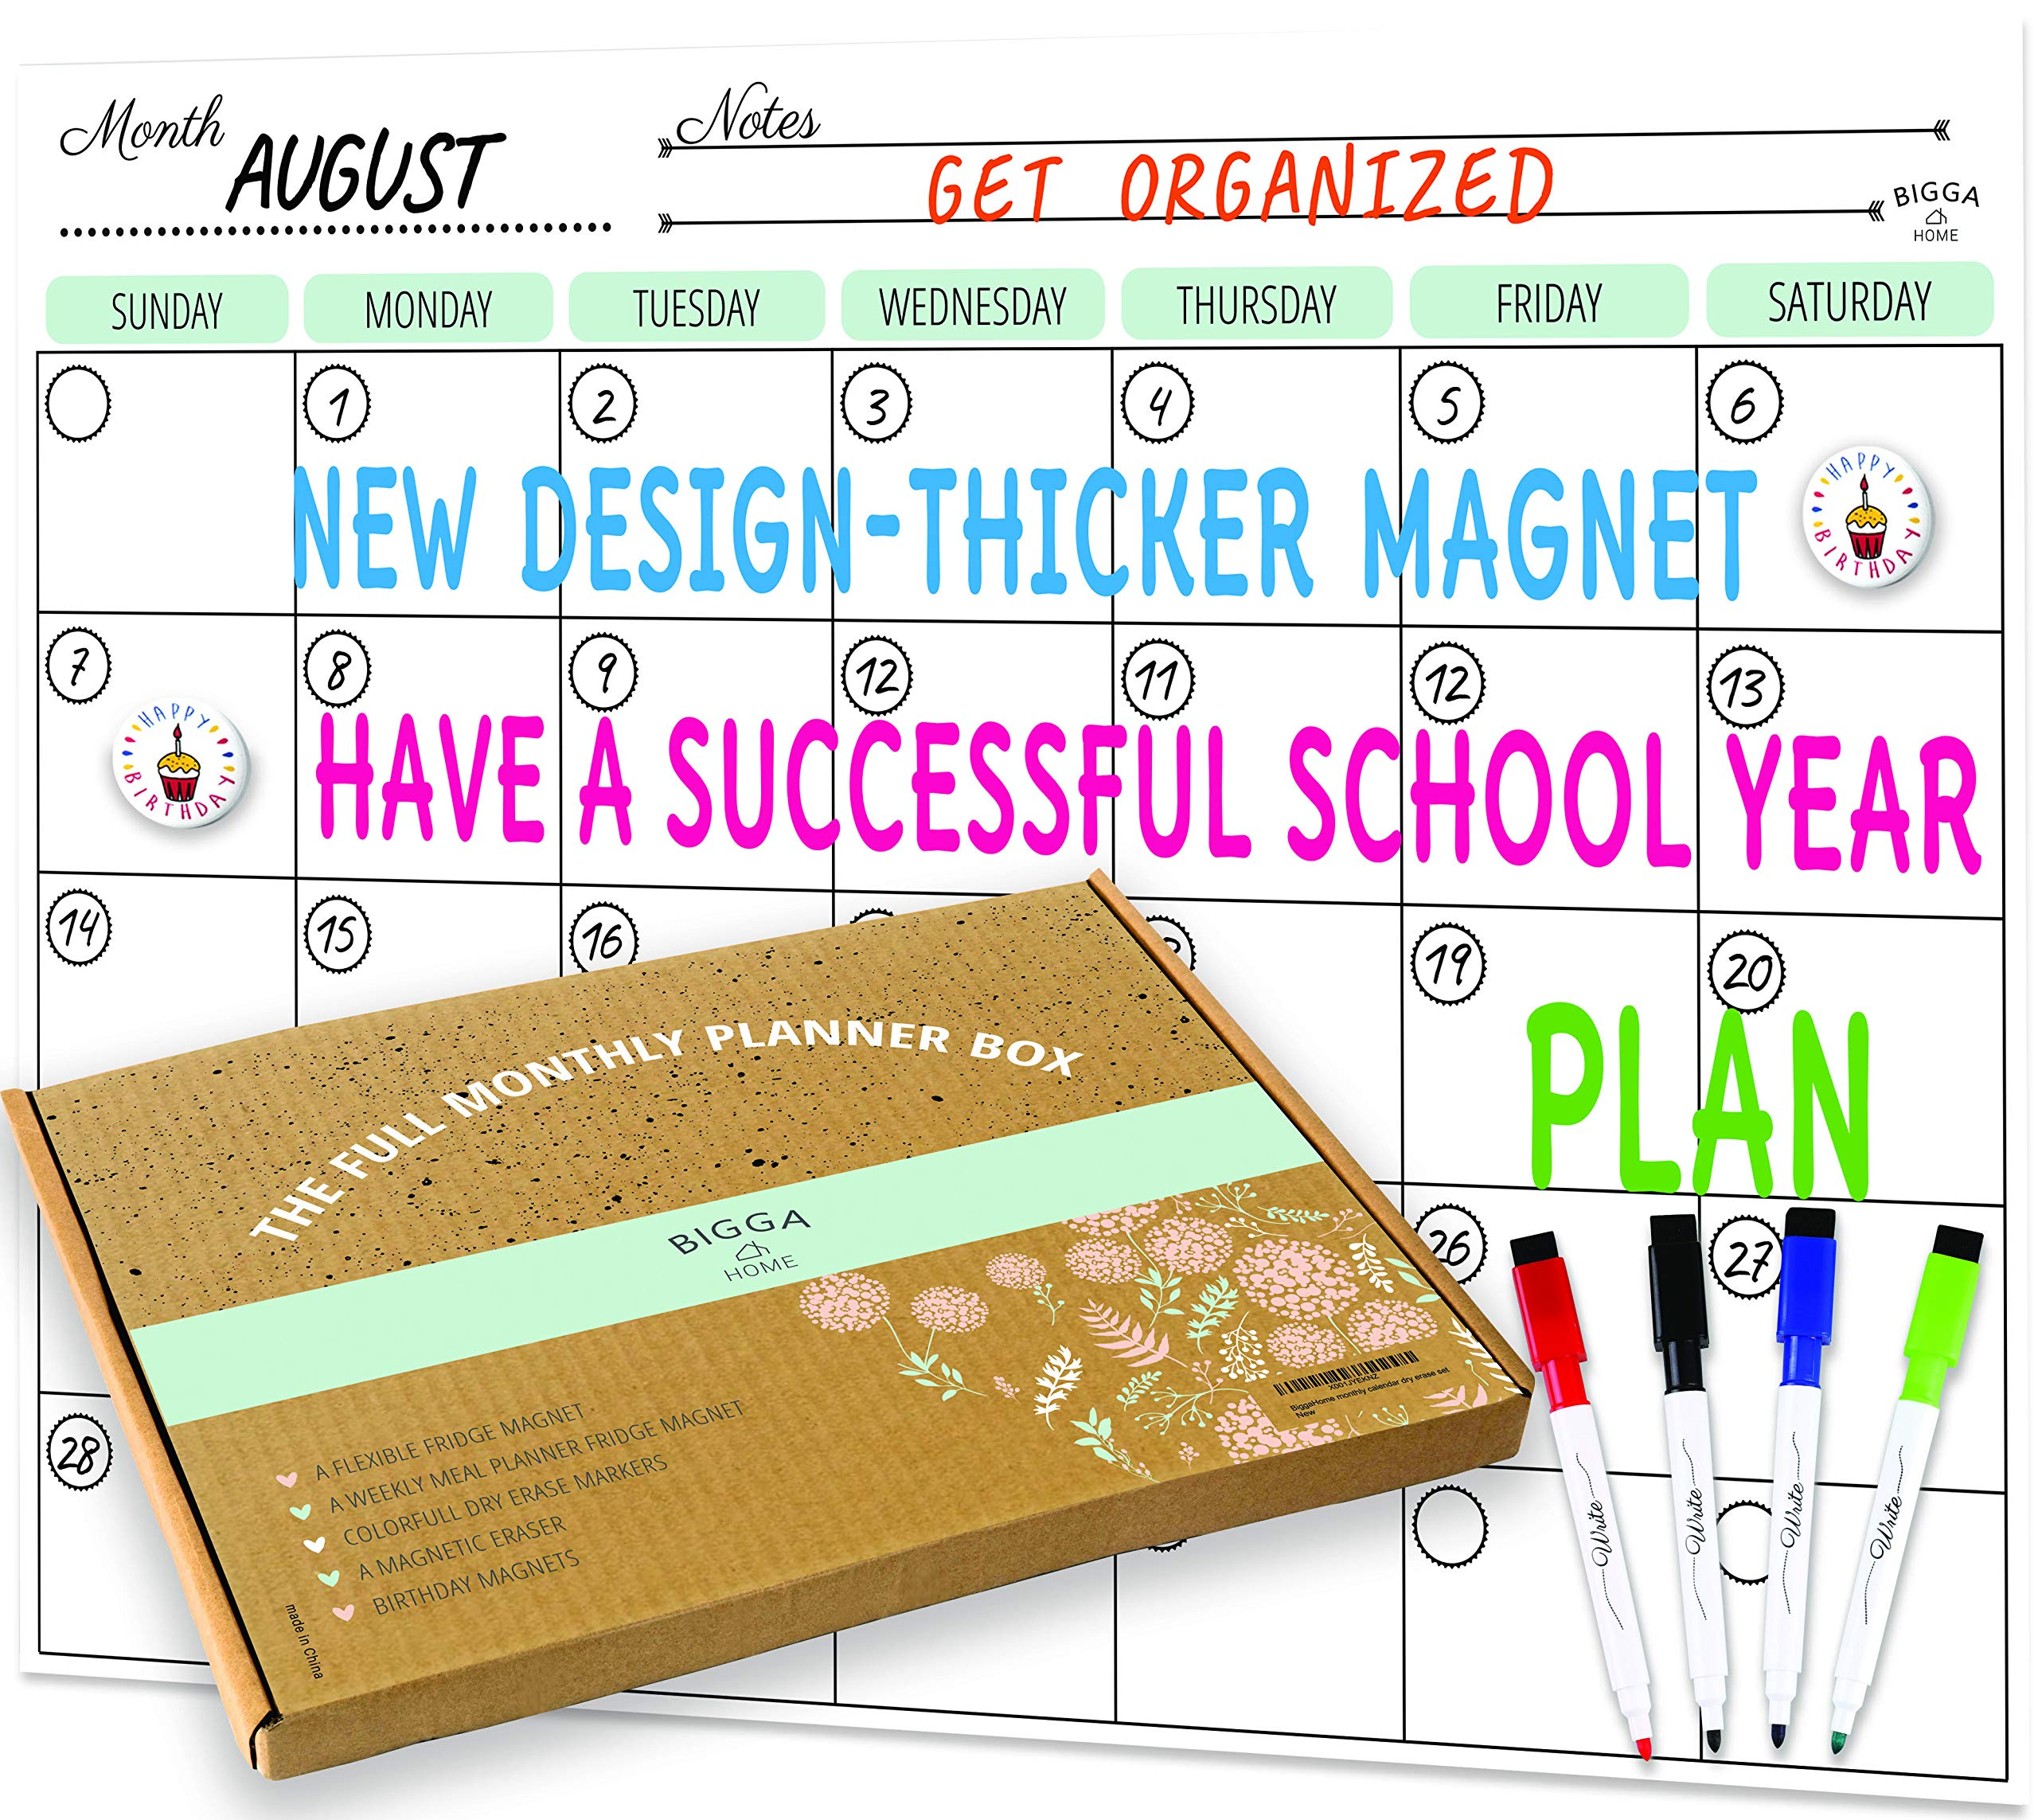 Dry Erase Monthly Magnetic Calendar Planner Set, White Board W/Extra Meal Planner, for Kitchen Refrigerator, Flexible, a Highly Designed Stiff Box for Home or Office. White, 16''x12''. by BIGGAHOME by Bigga Home (Image #1)